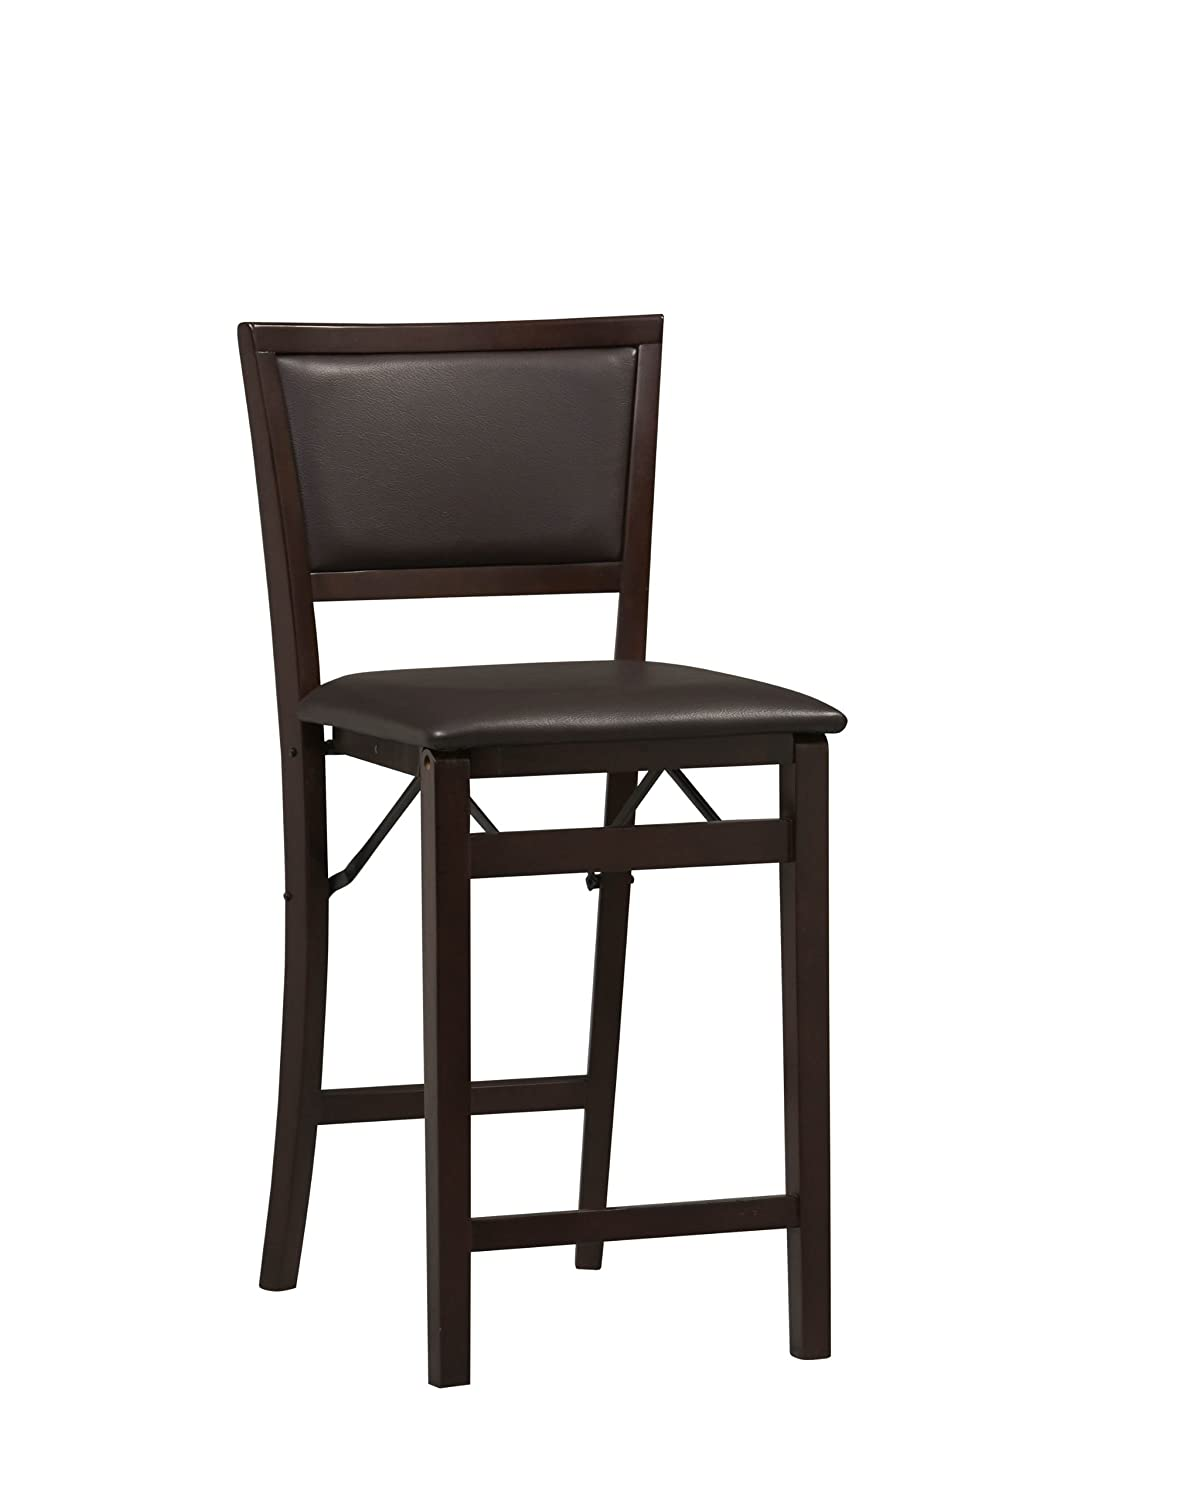 Amazon.com Linon Home Decor Keira Pad Back Folding Counter Stool 24-Inch Kitchen u0026 Dining  sc 1 st  Amazon.com & Amazon.com: Linon Home Decor Keira Pad Back Folding Counter Stool ...